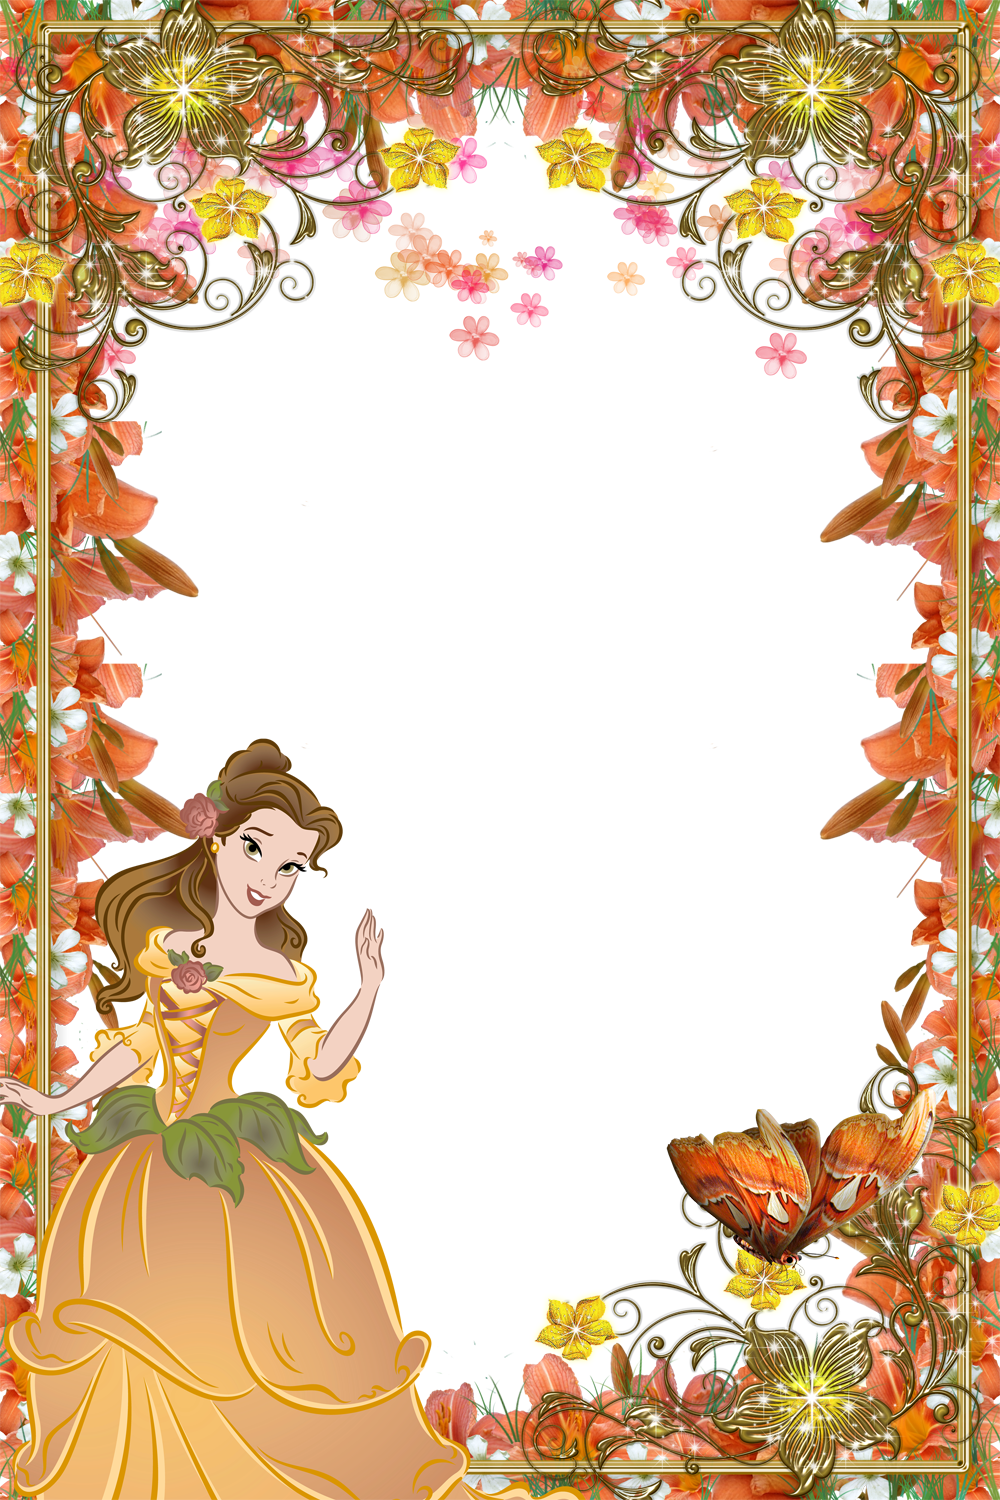 Disney belle frame clipart image royalty free stock Frames with Beauties - Disney Princess Belle | Flowers of Indus Valley image royalty free stock